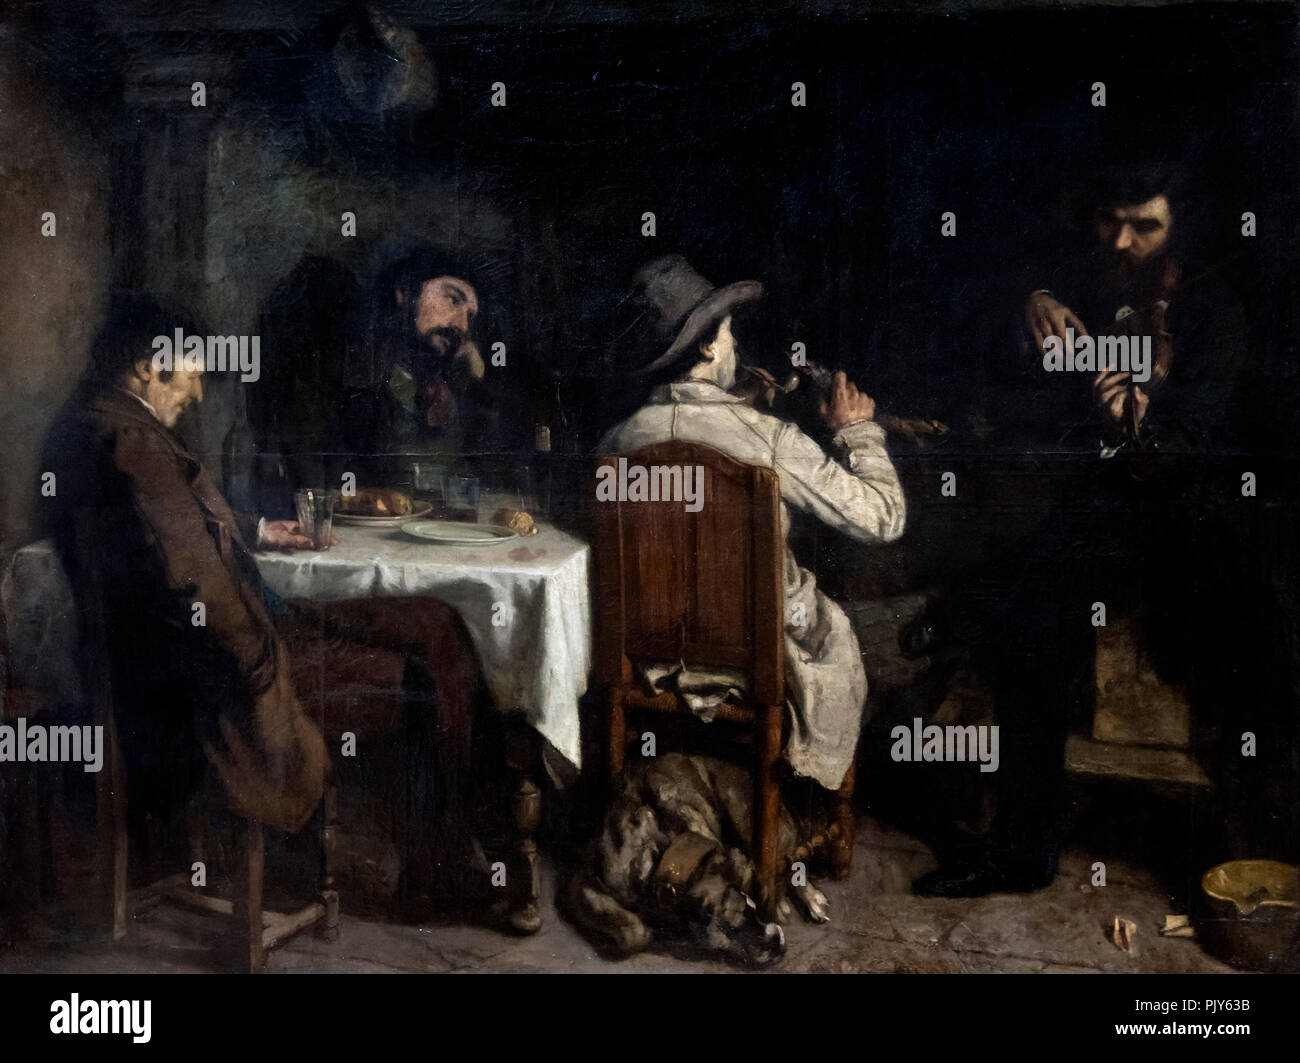 Gustave Courbet (1819-1877) 'After Dinner in Ornans' (L'Apres dInee a  Ornans), oil on canvas, 1849 - Stock Image